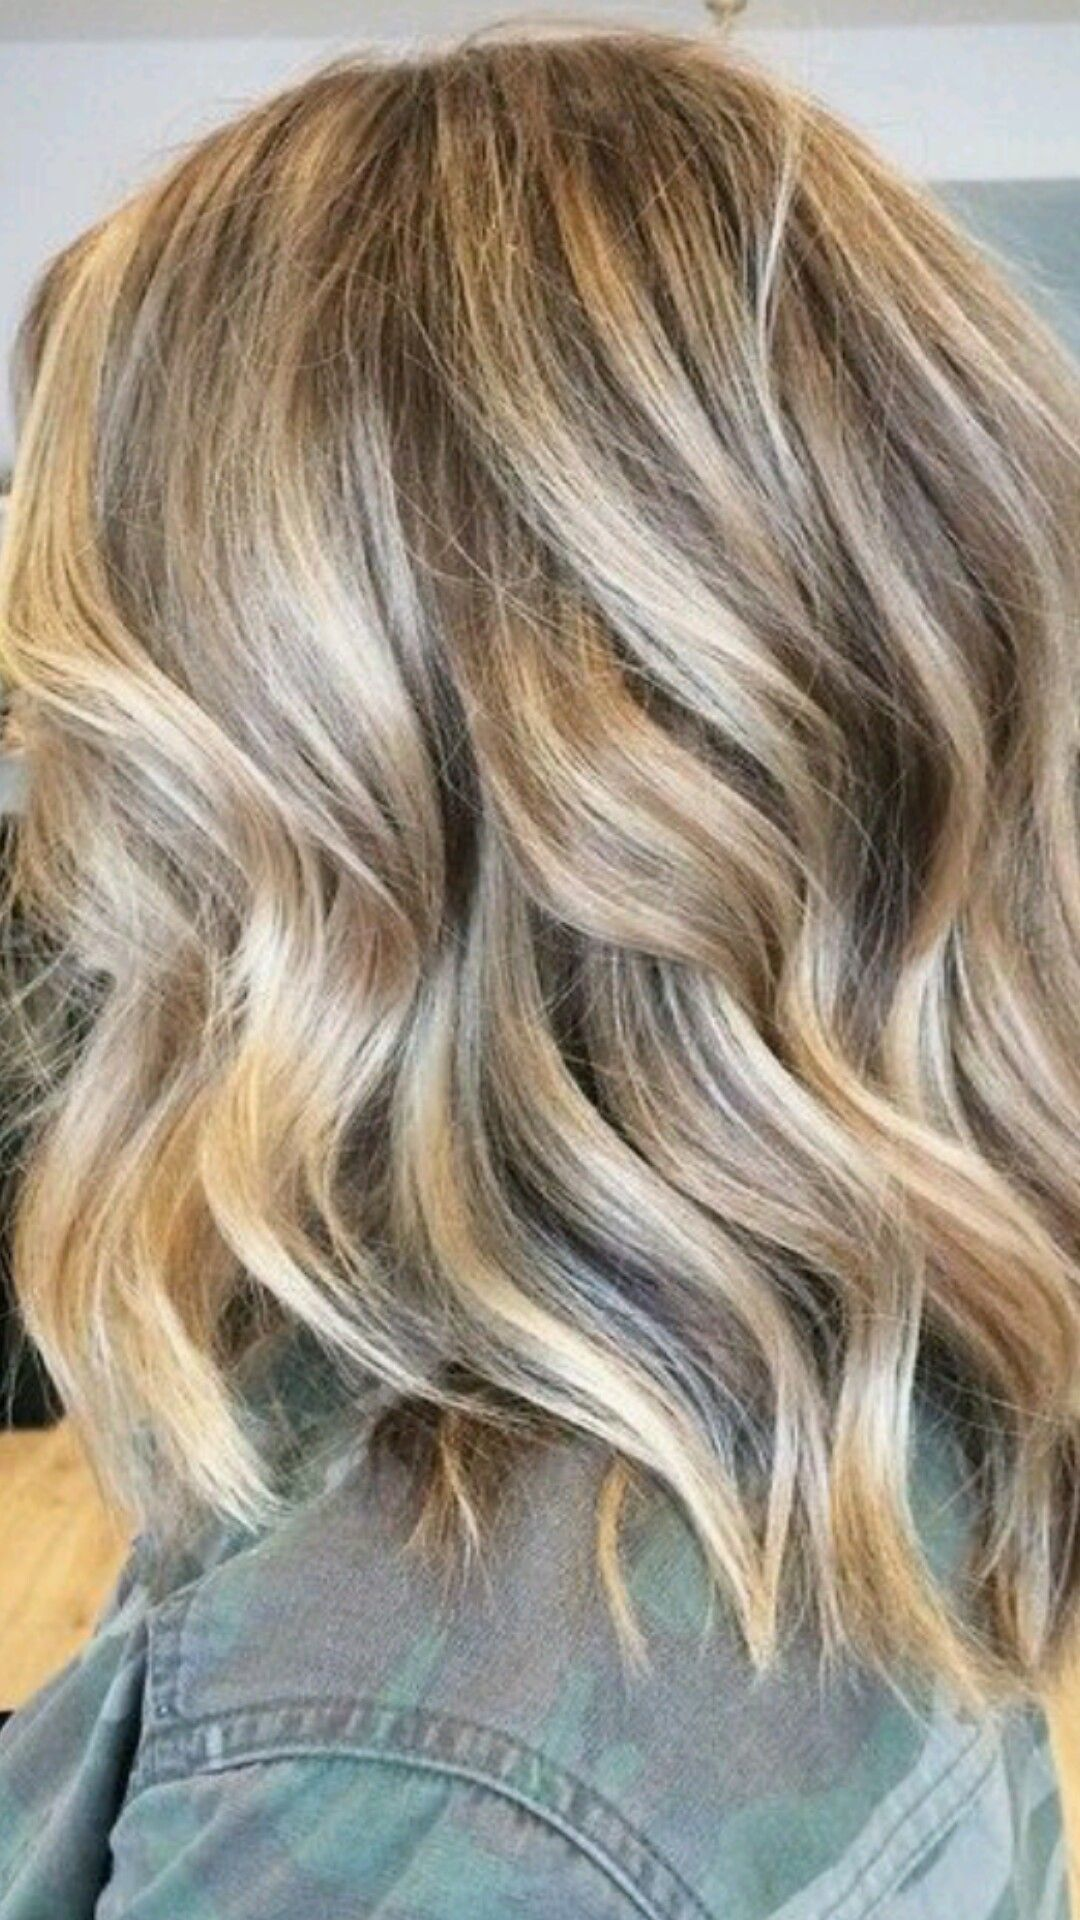 Frisur Blond Pin By Jozee Spatta On Hair Goals In 2019 Dark Blonde Hair Color